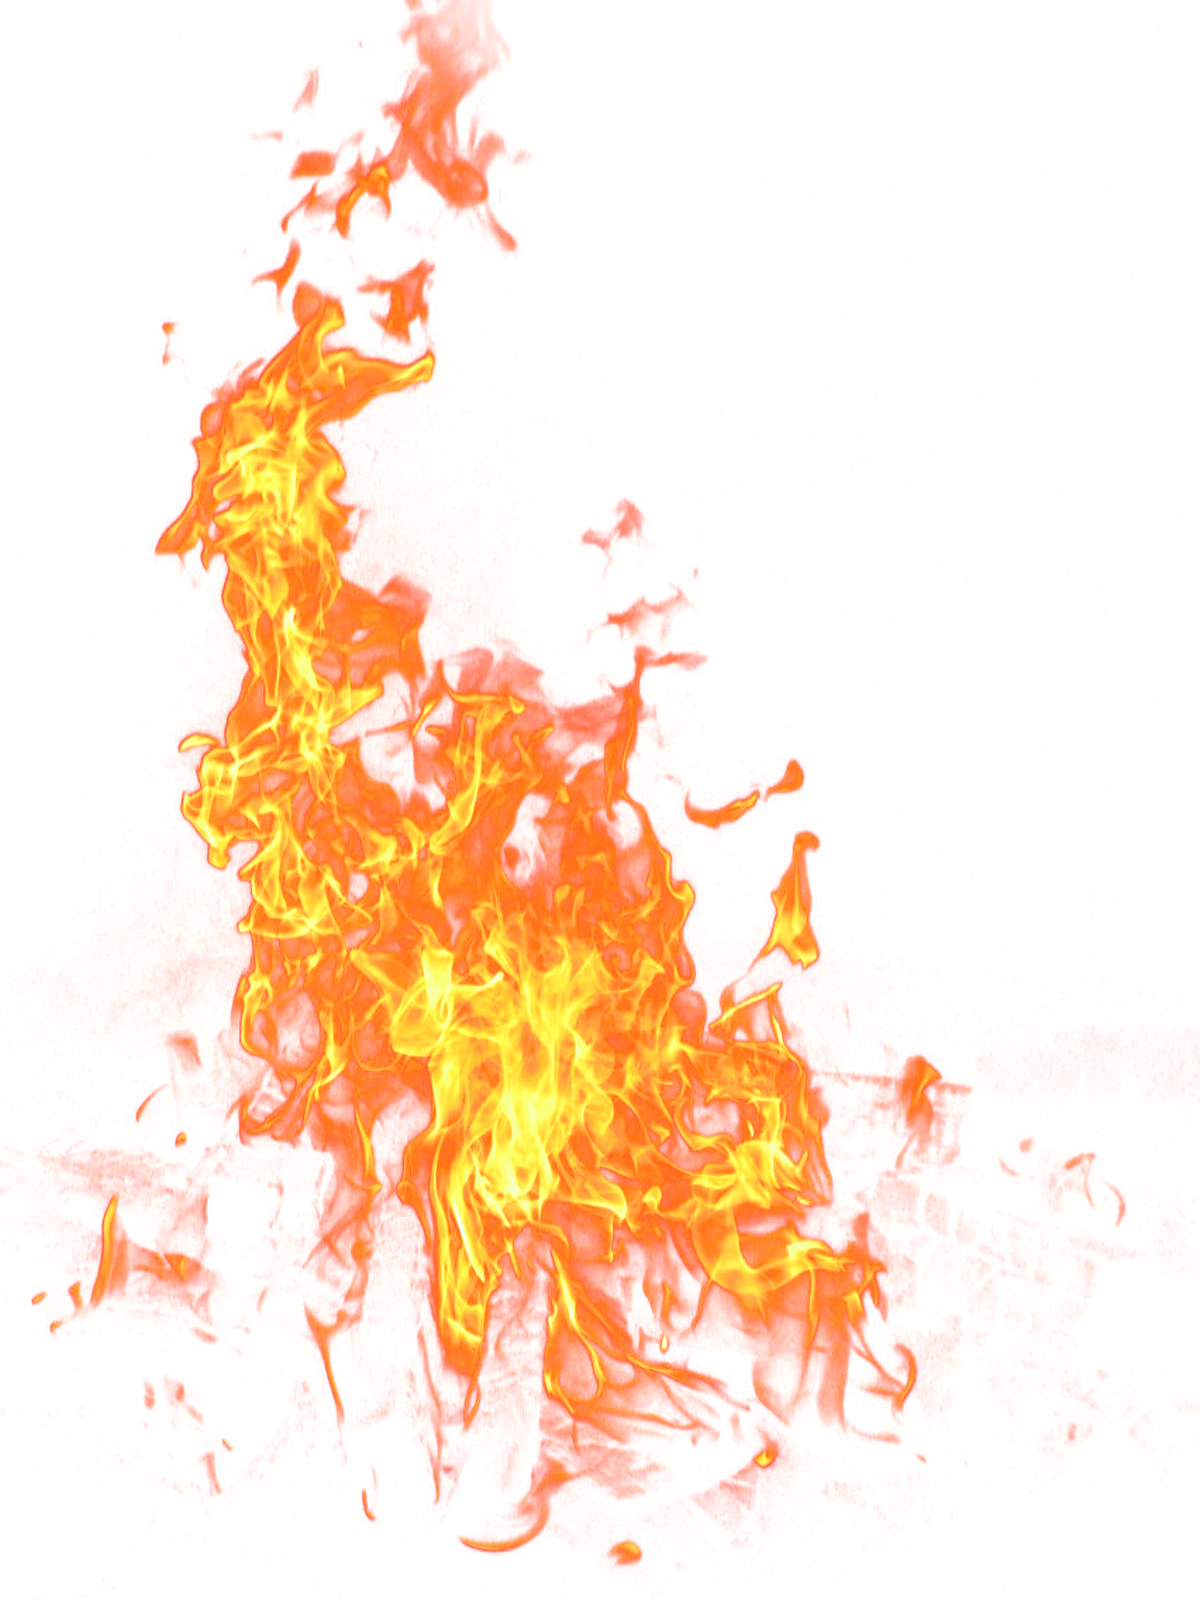 Fire Transparent PNG Image   Fire Transparent PNG Image image #679